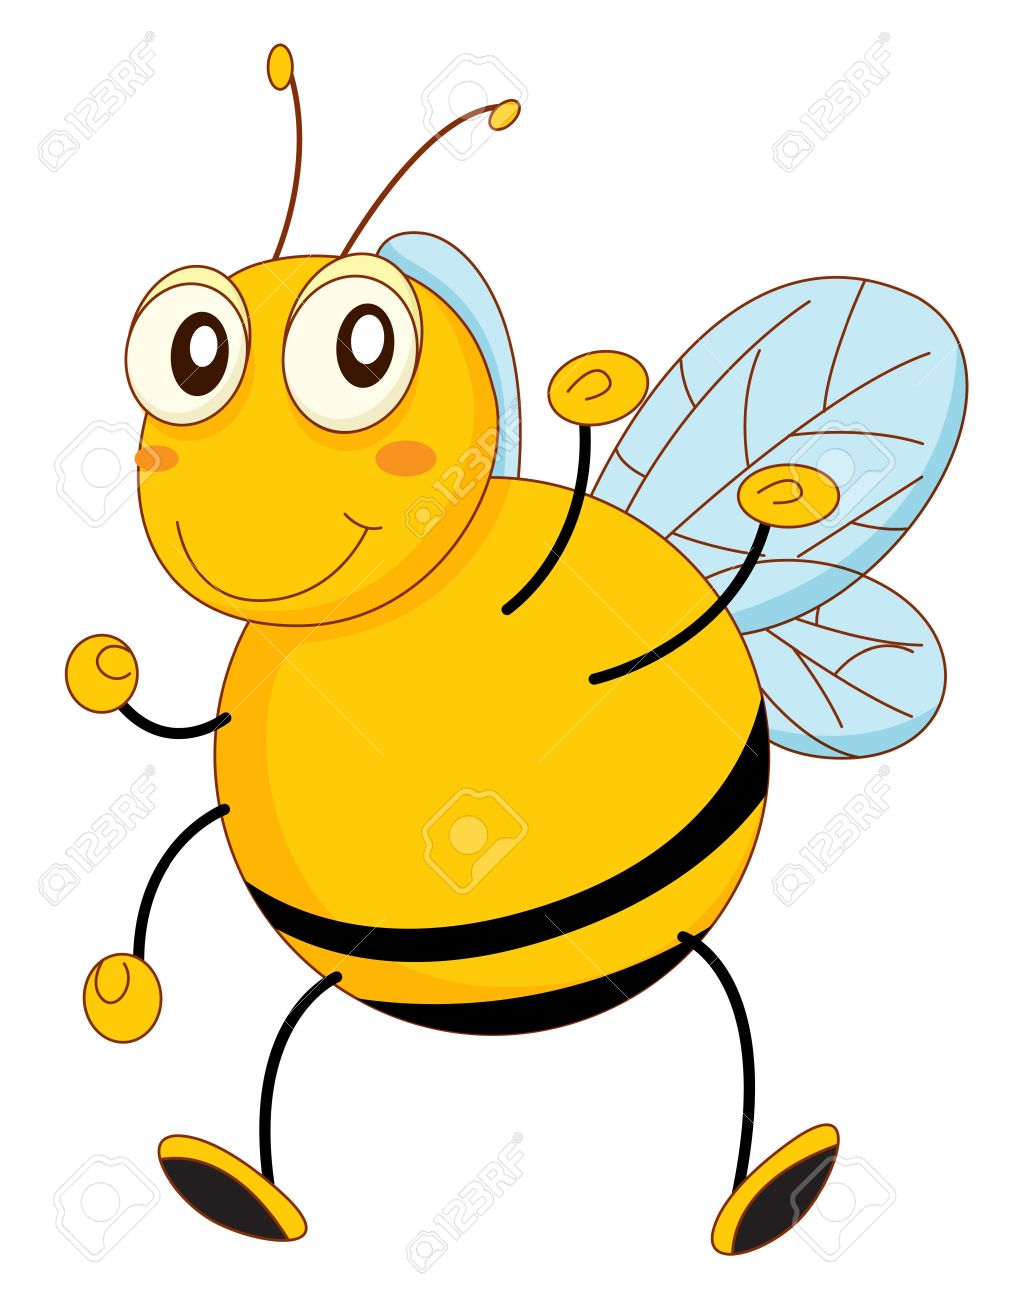 simple cartoon of a bee stock vector 13630215 - Simple Cartoon Pics